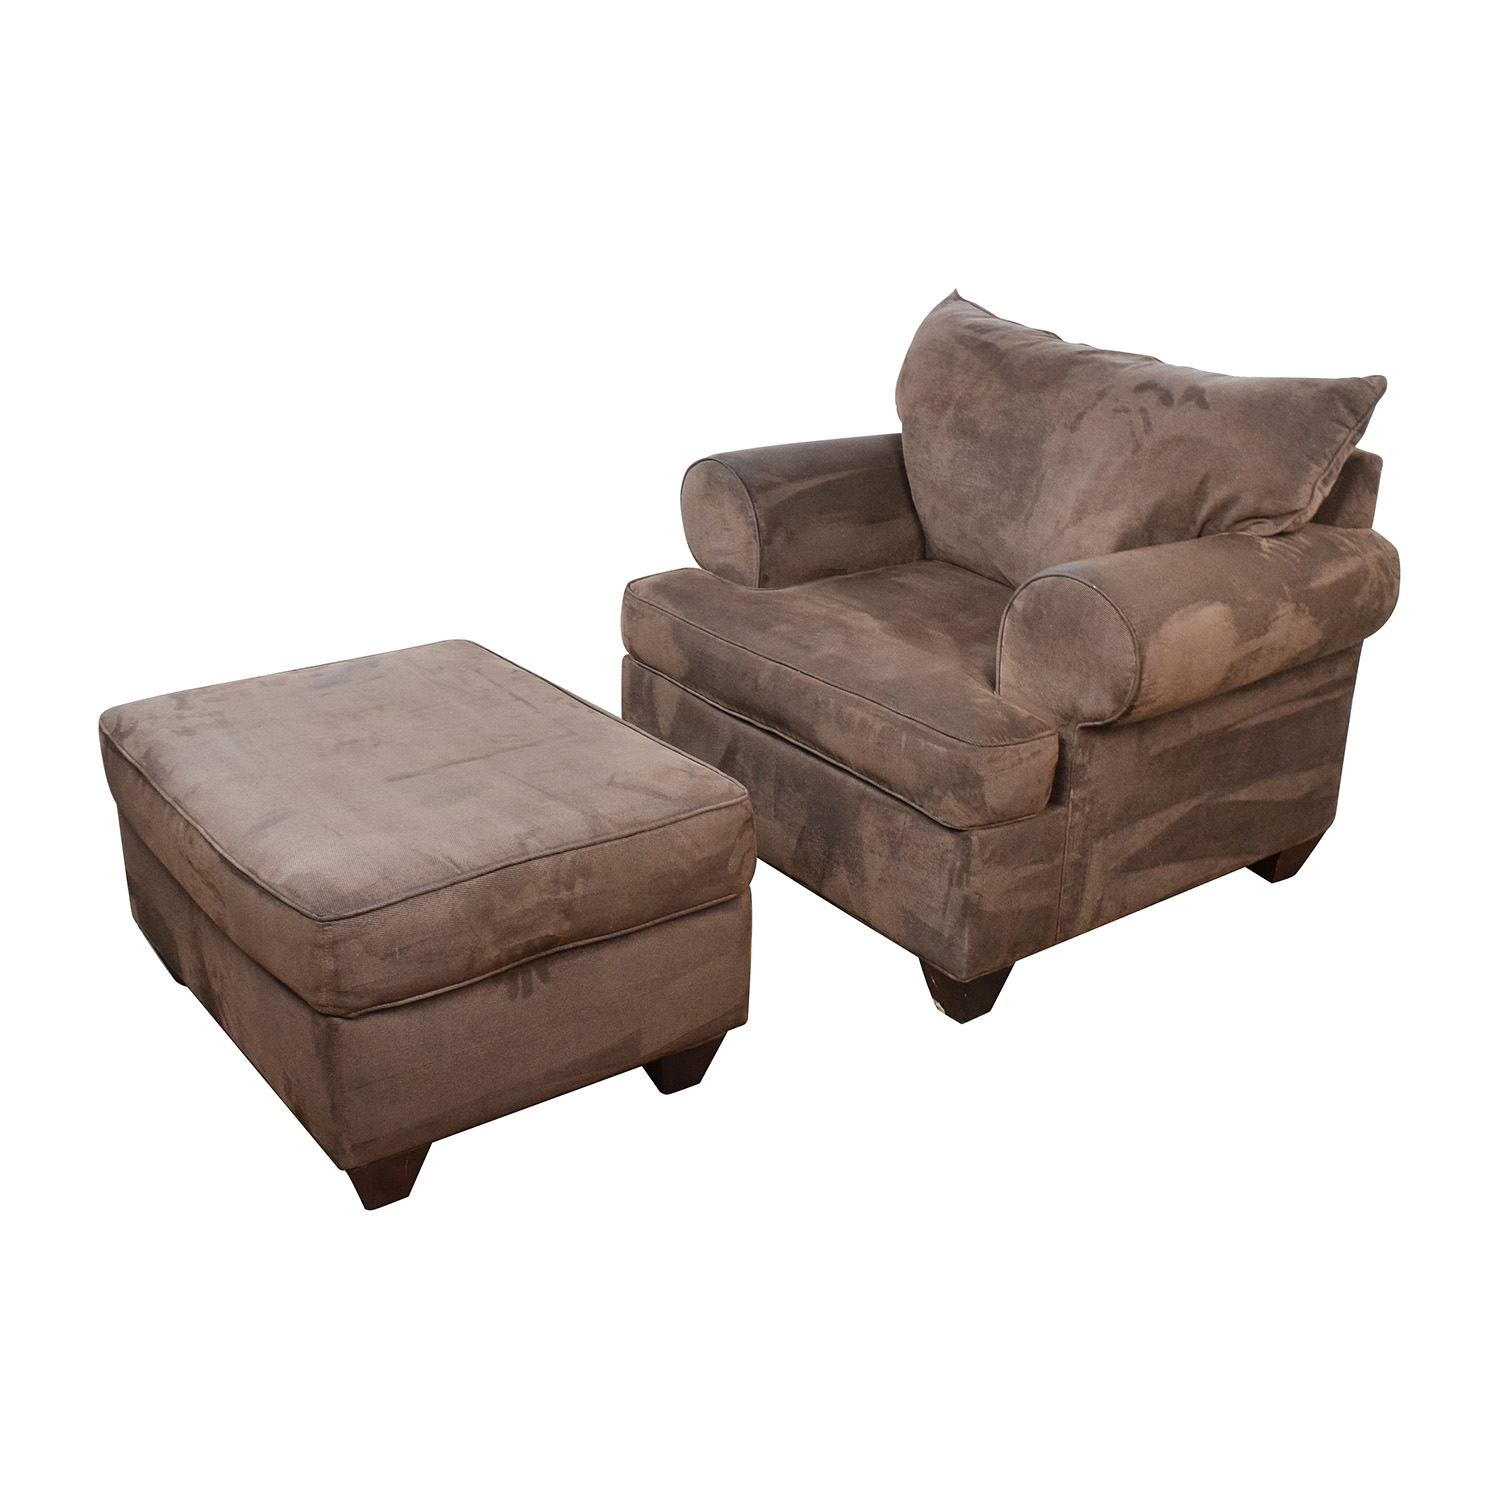 Inspirational Cheap sofa Chairs